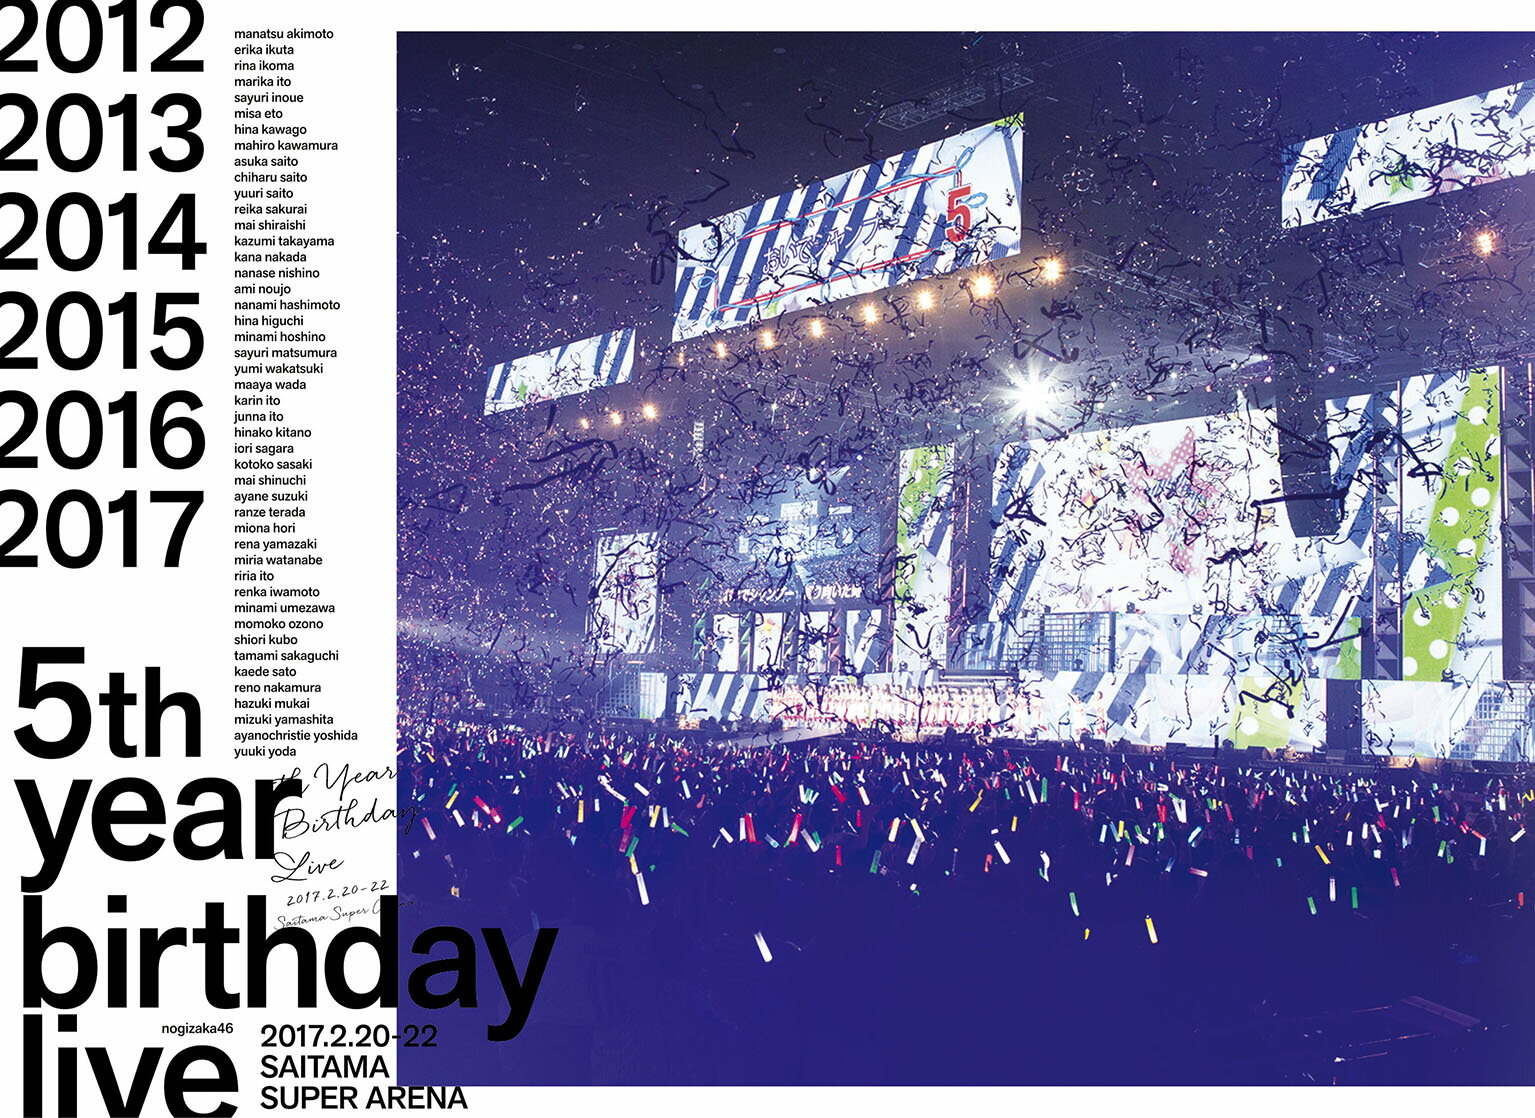 5th YEAR BIRTHDAY LIVE 2017.2.20-22 SAITAMA SUPER ARENA(完全生産限定盤)【Blu-ray】画像